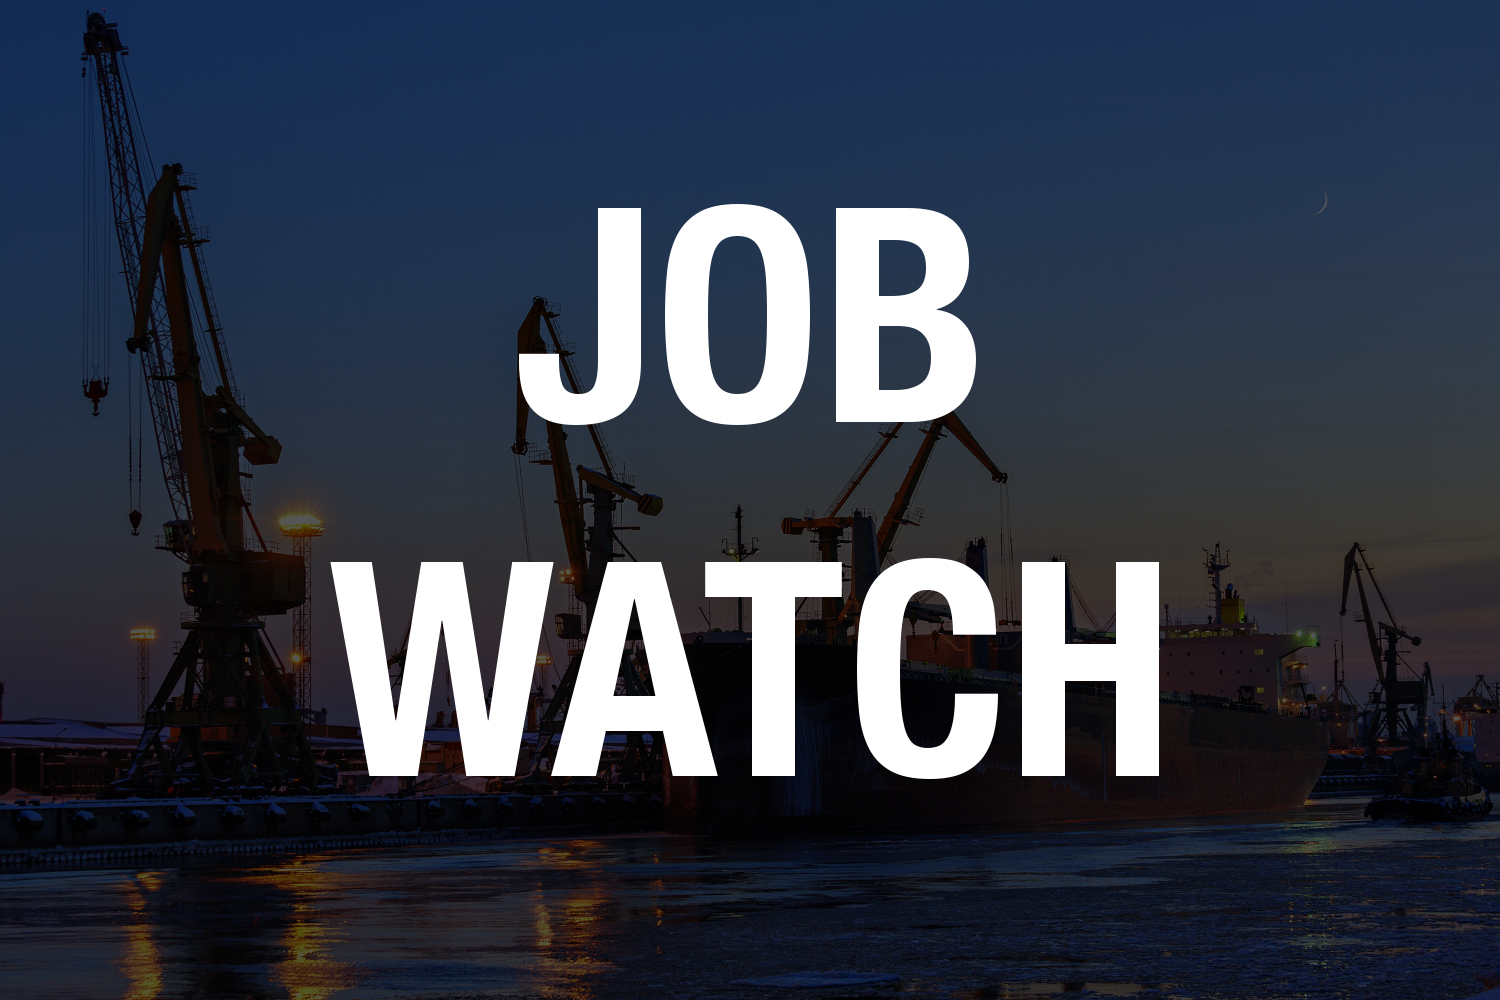 Job Watch